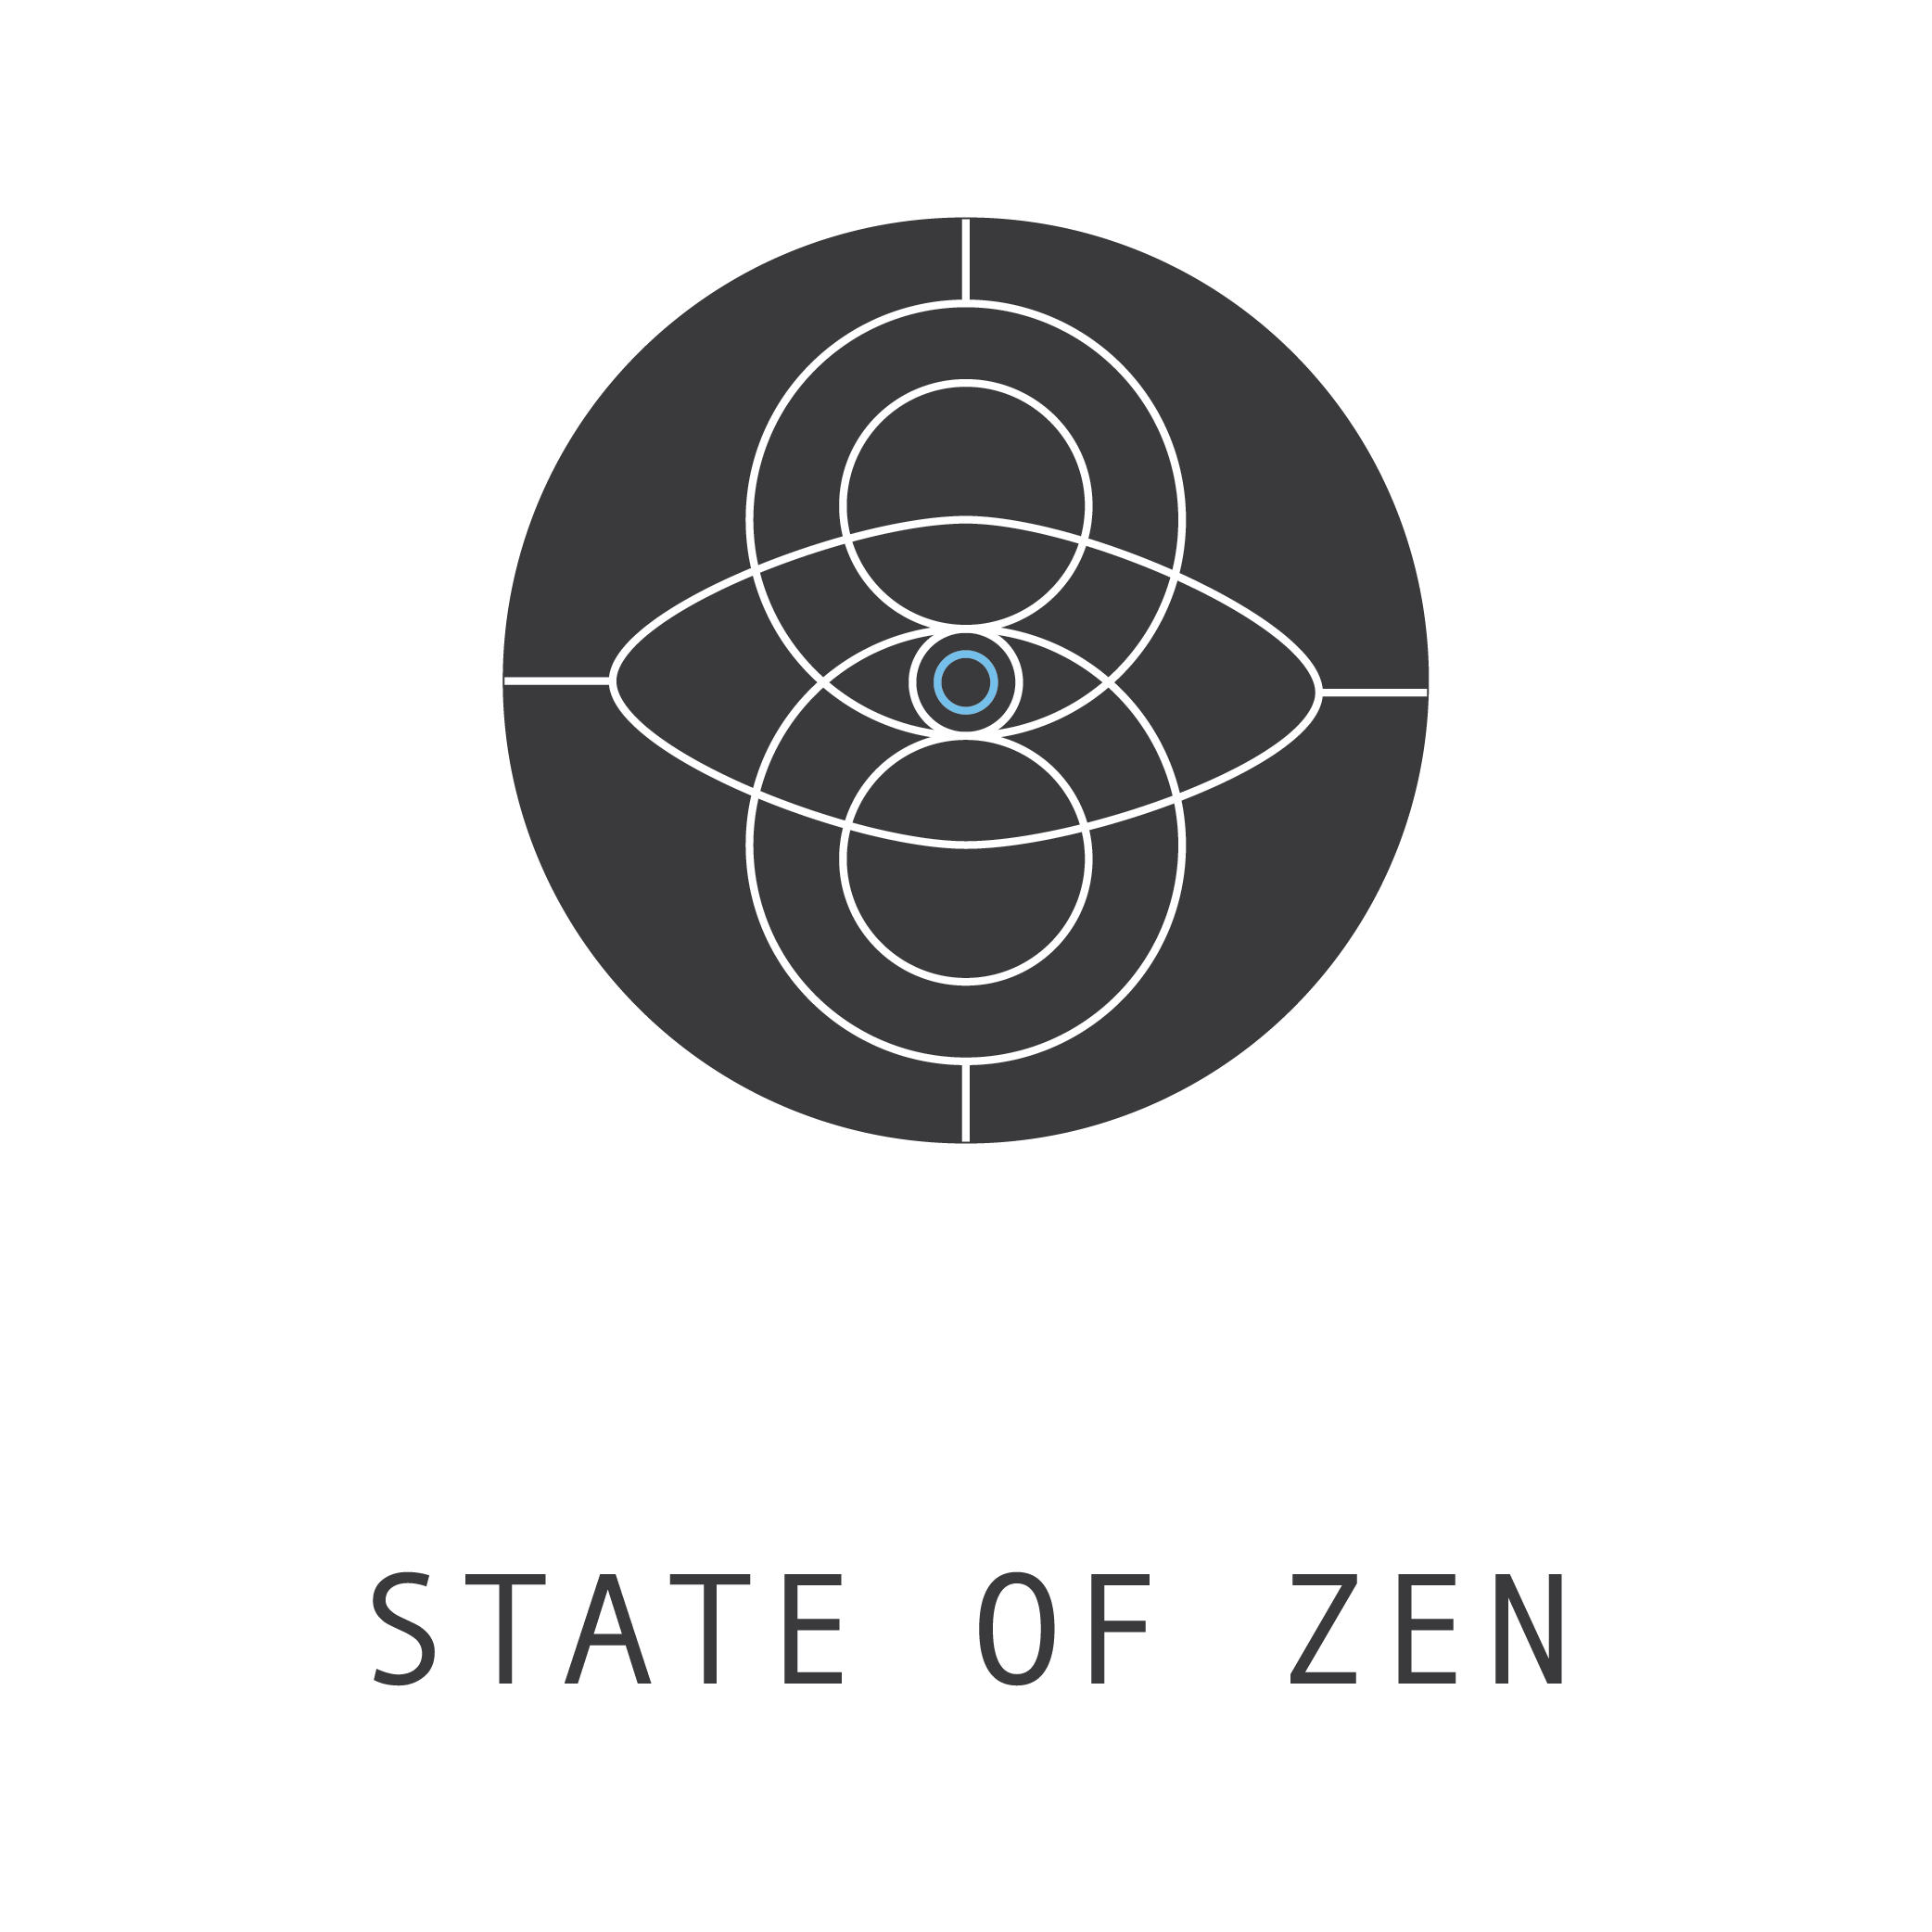 STATE OF ZEN FINAL LOGO-02.png